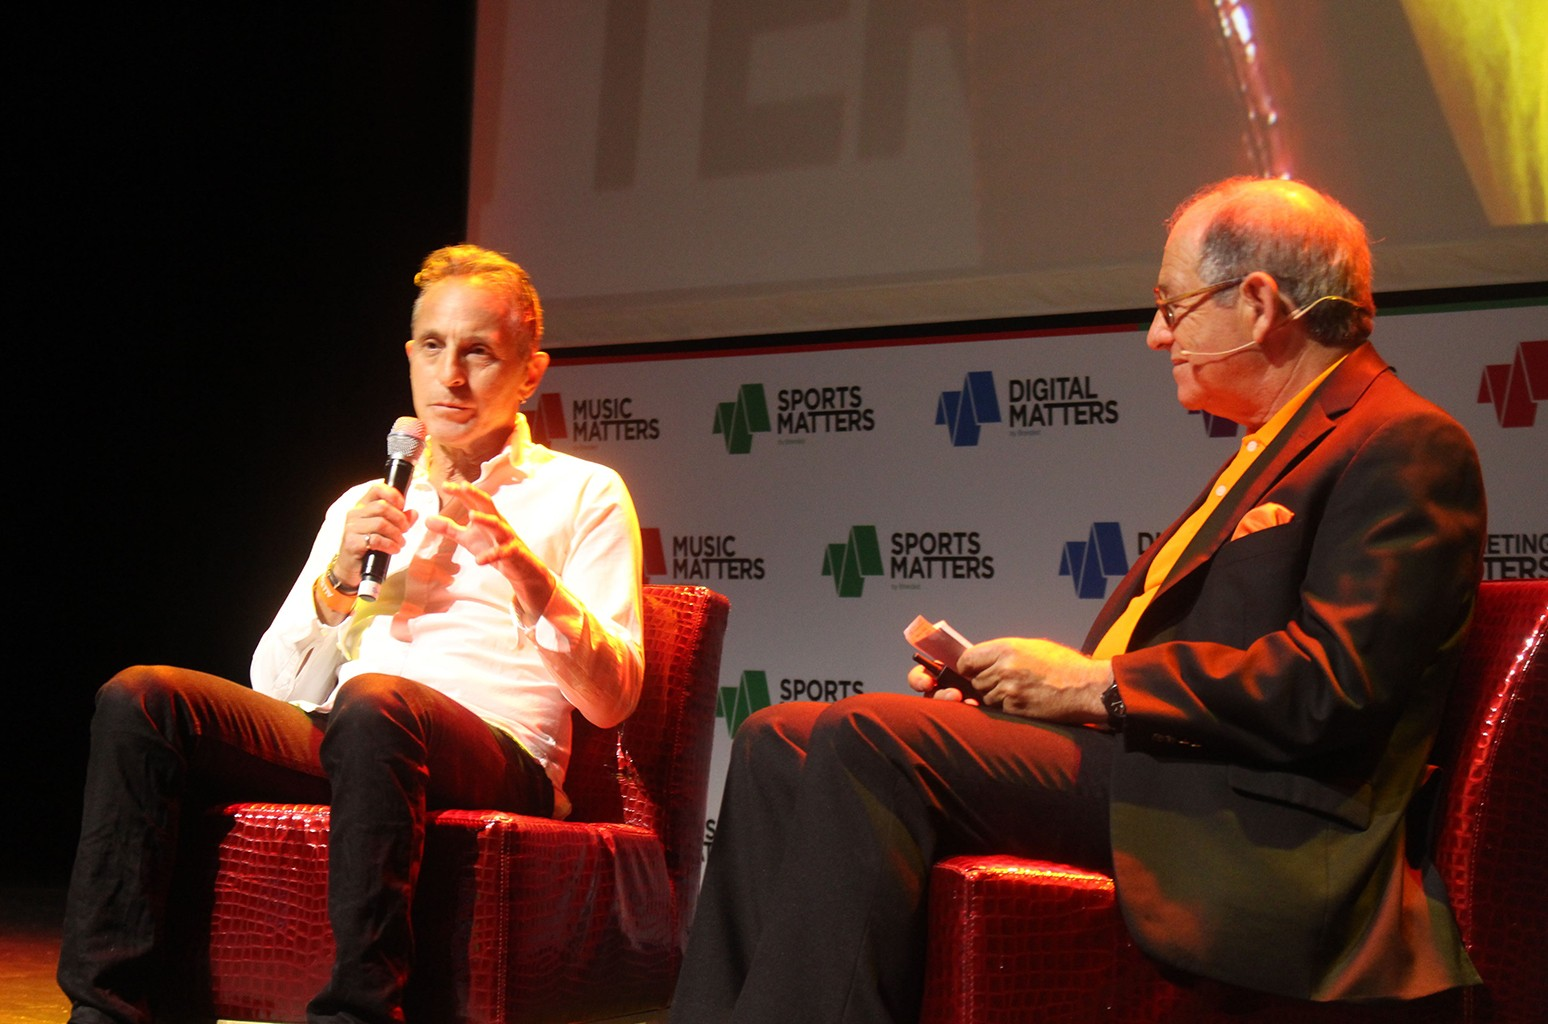 Arthur Fogel at the Music Matters Conference in Singapore.